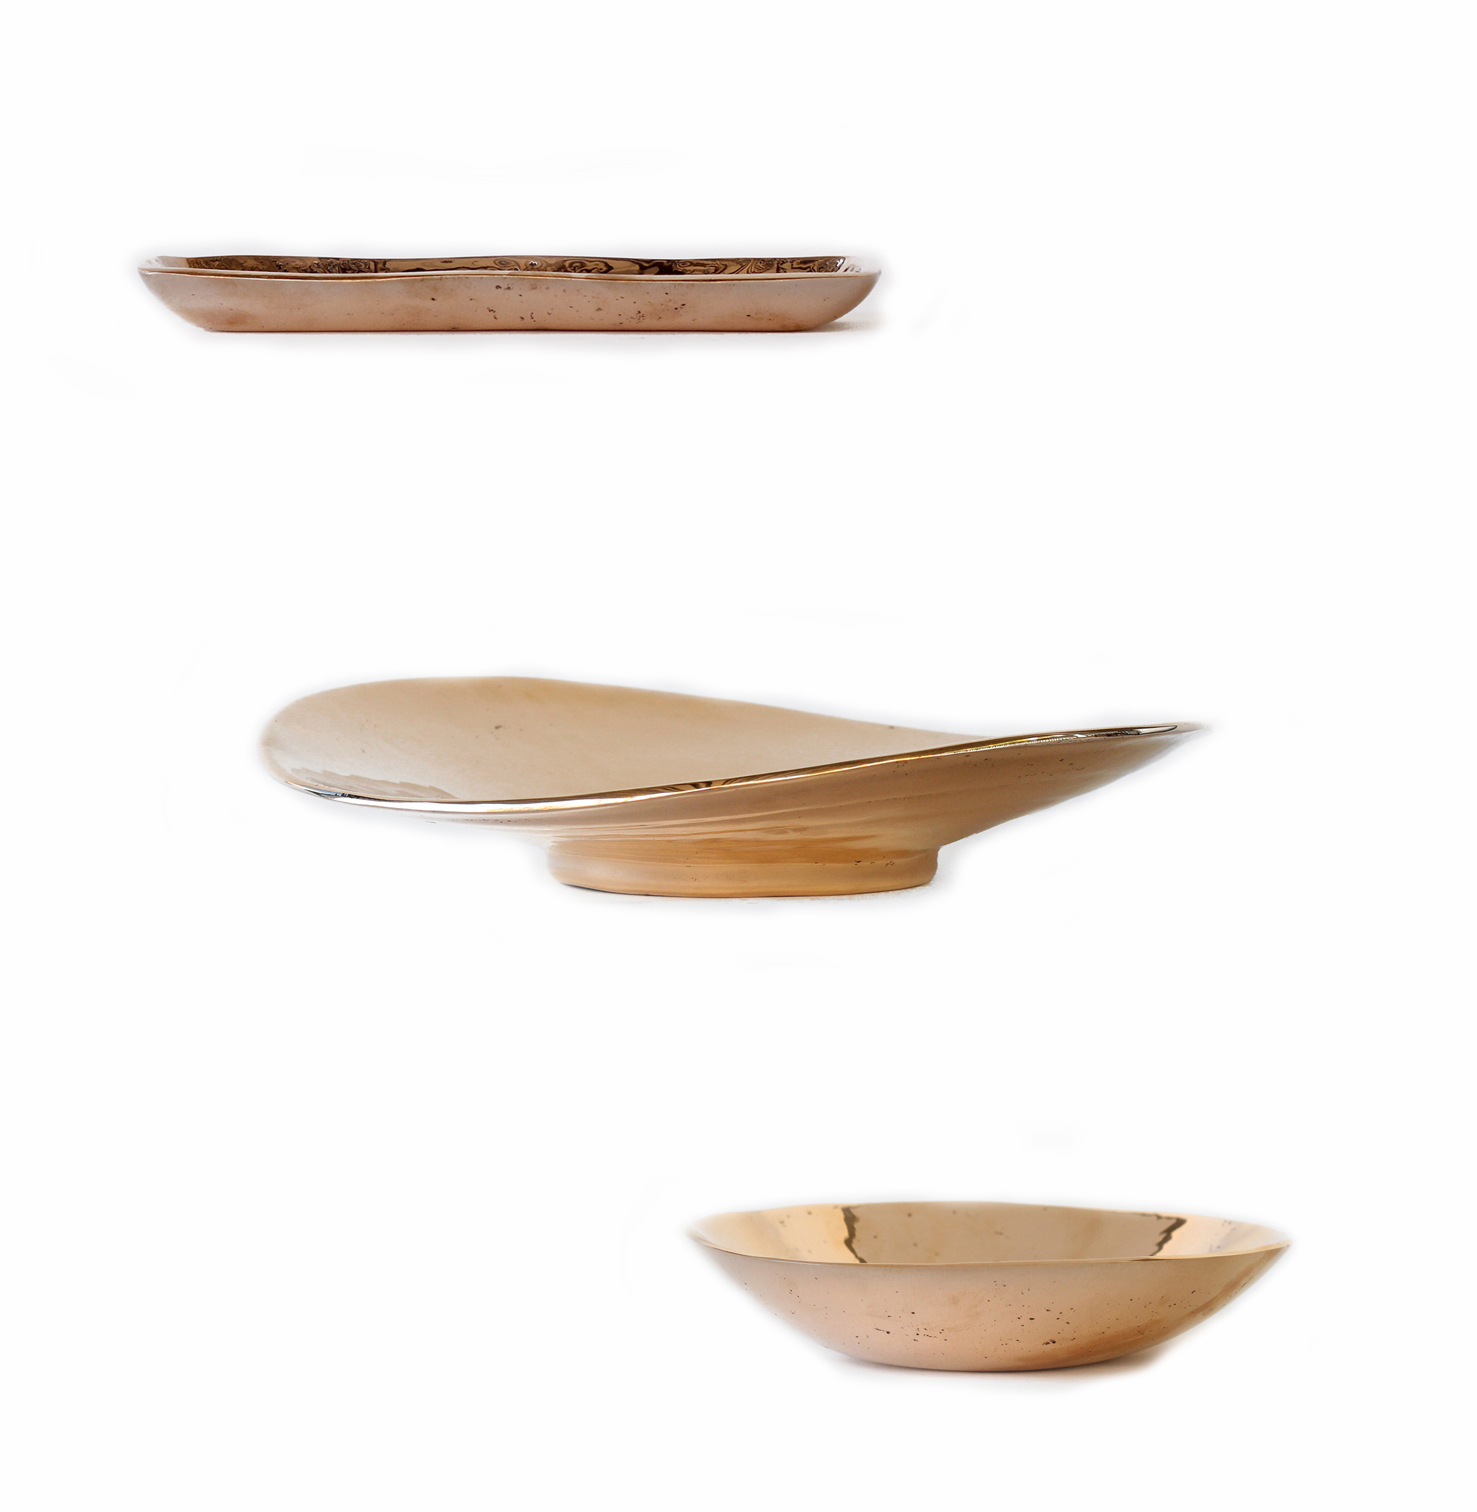 Small tray, large bronze bowl, and small bronze bowl for Commune Design.